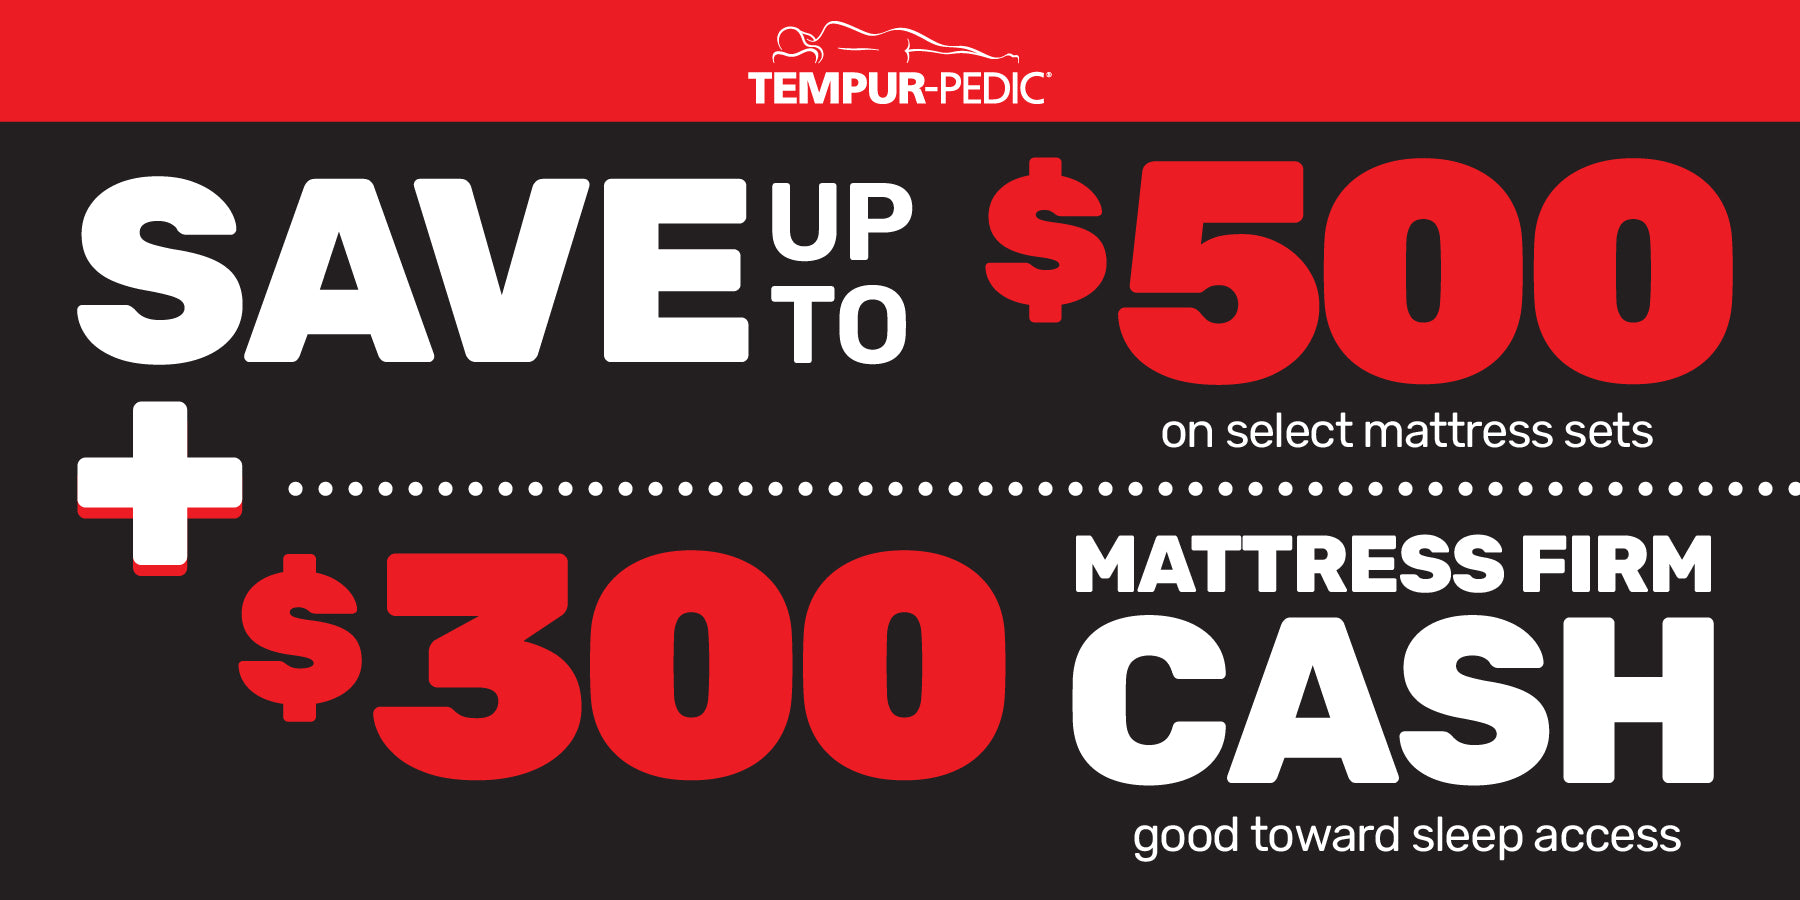 Mattress Firm Tempurpedic Sale